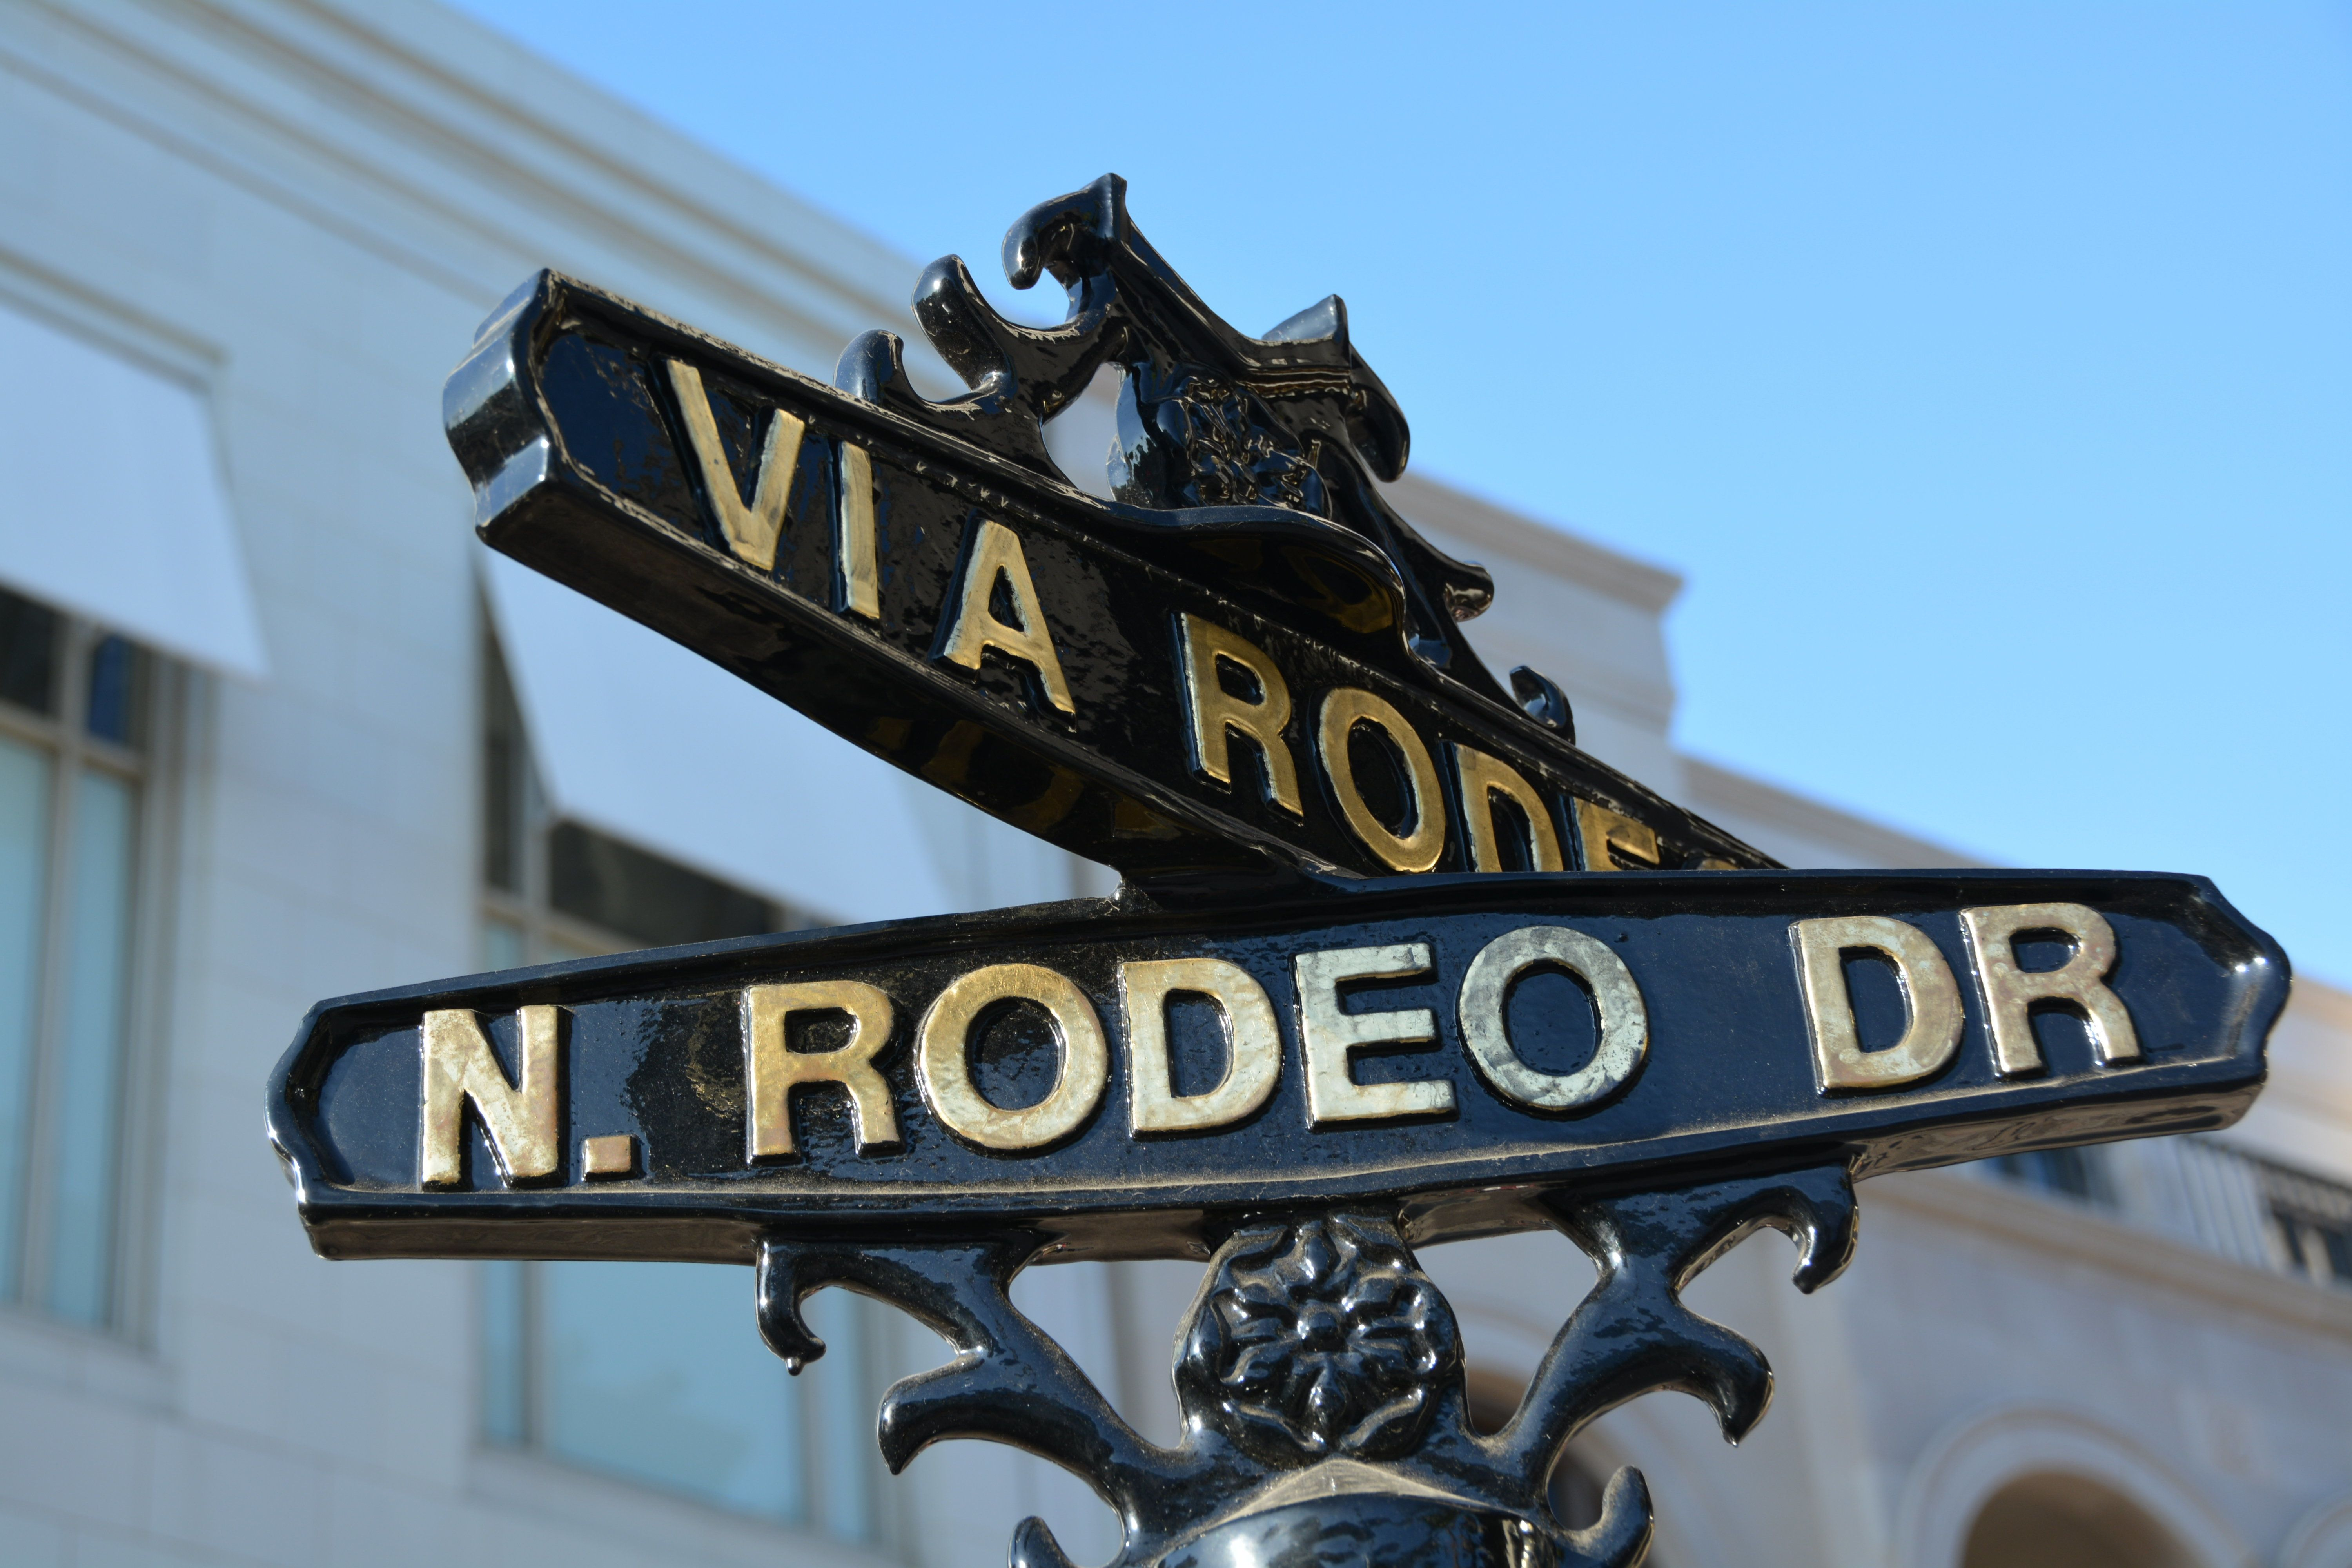 Street sign of Rodeo drive in Beverly Hills, Los Angeles